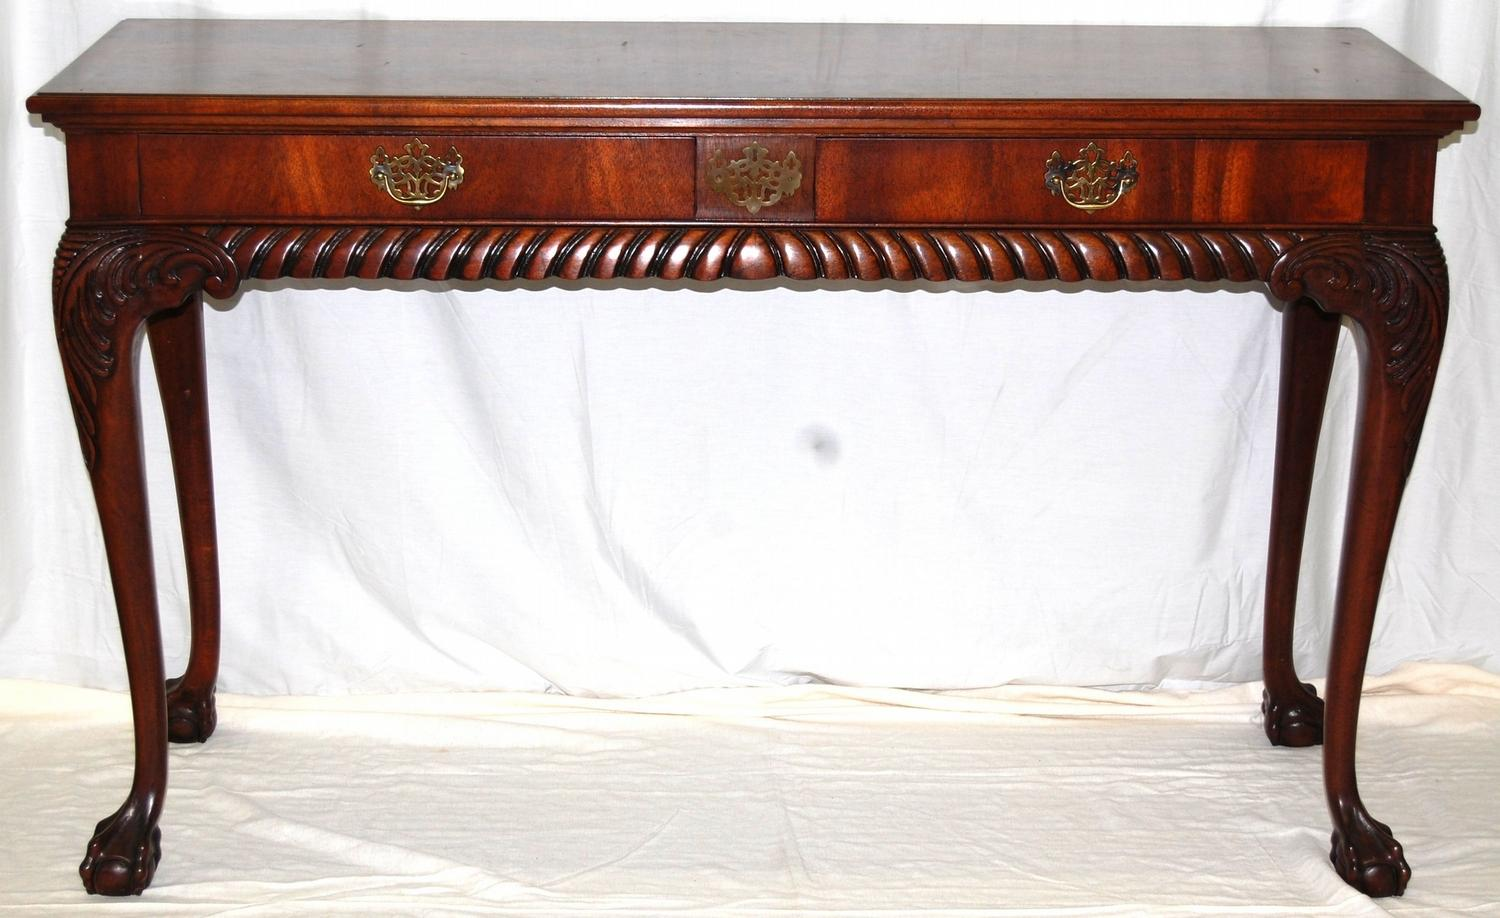 Image 1 Mount Airy Furniture Company Sofa Console Table W Carved Ornate Detail Work